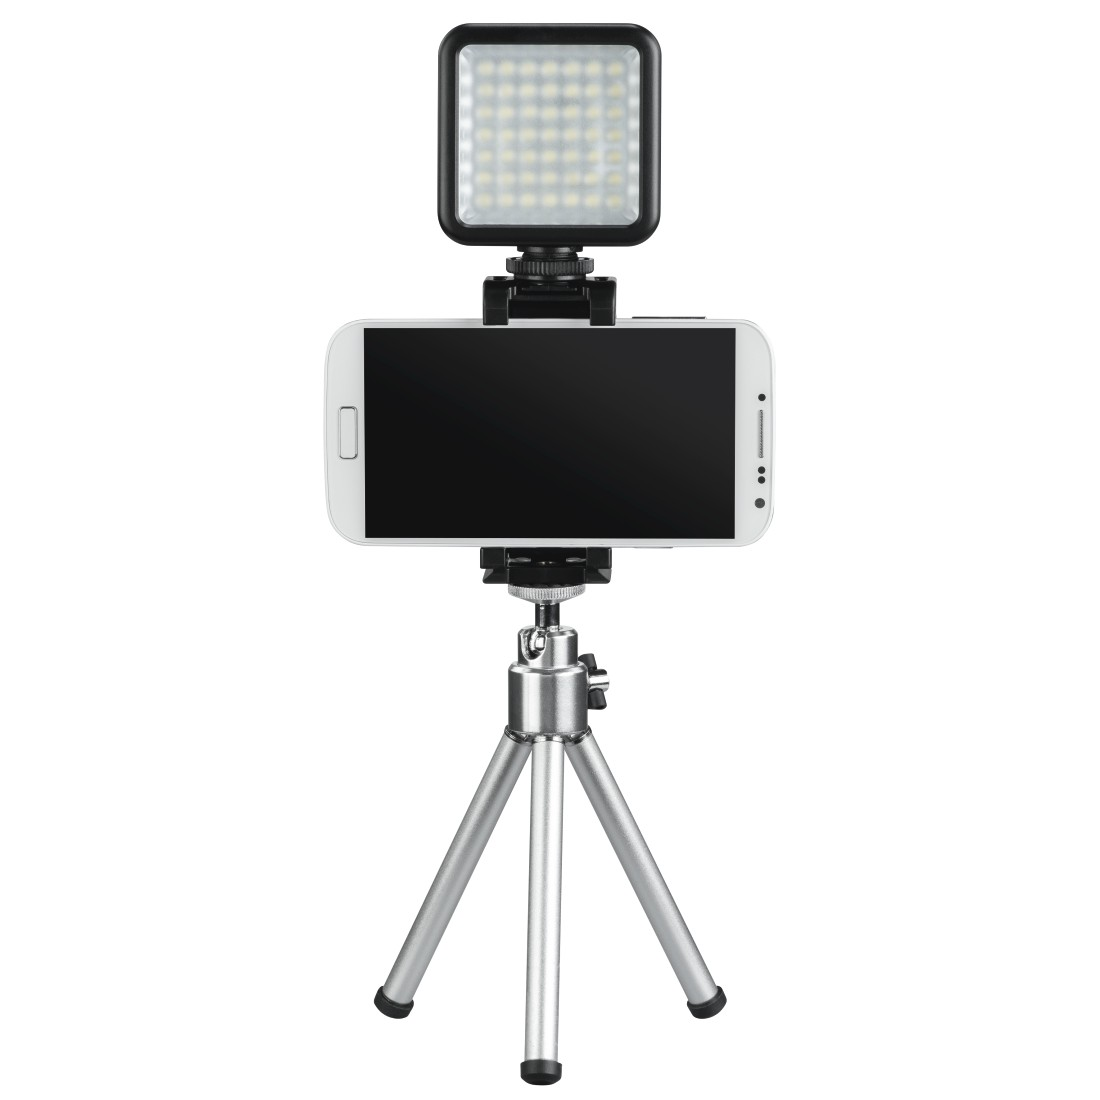 "awx High-Res Appliance - Hama, ""49 BD"" LED Lights for Smartphone, Photo and Video Cameras"